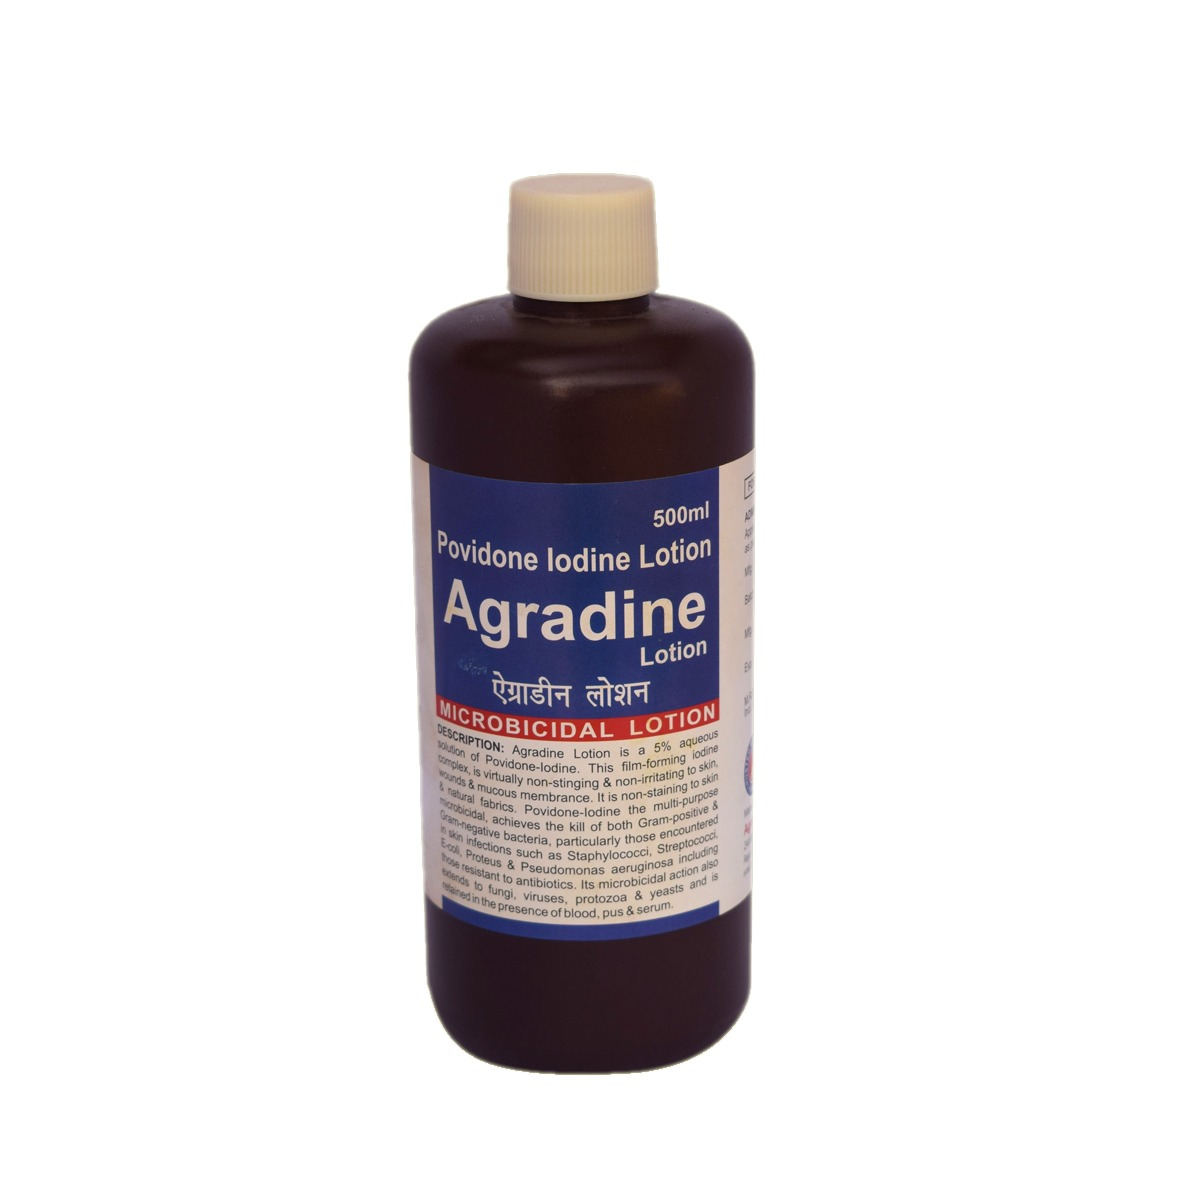 agradine lotion